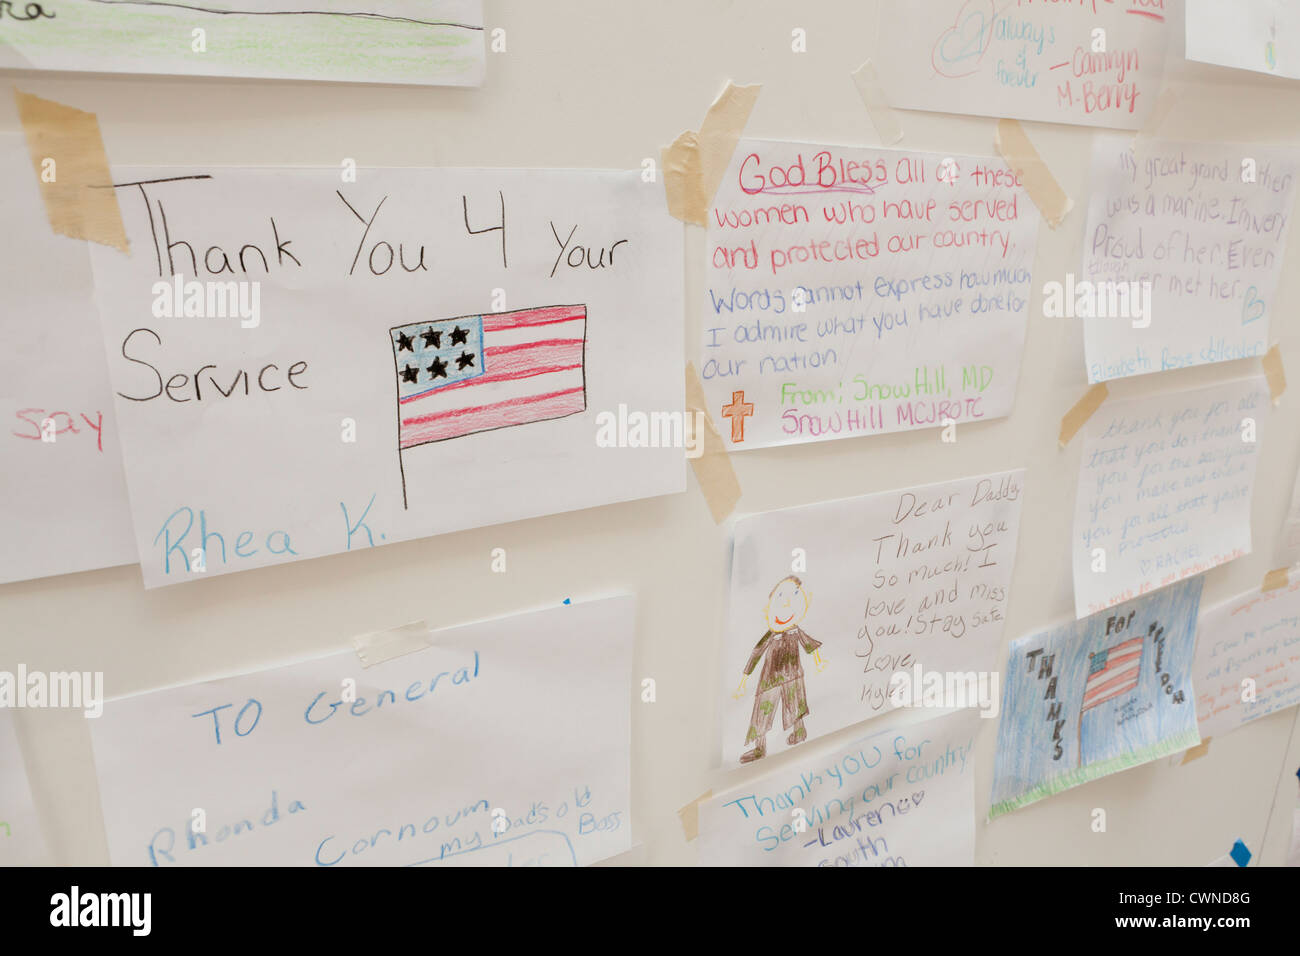 Appreciation messages to service men and women - Stock Image